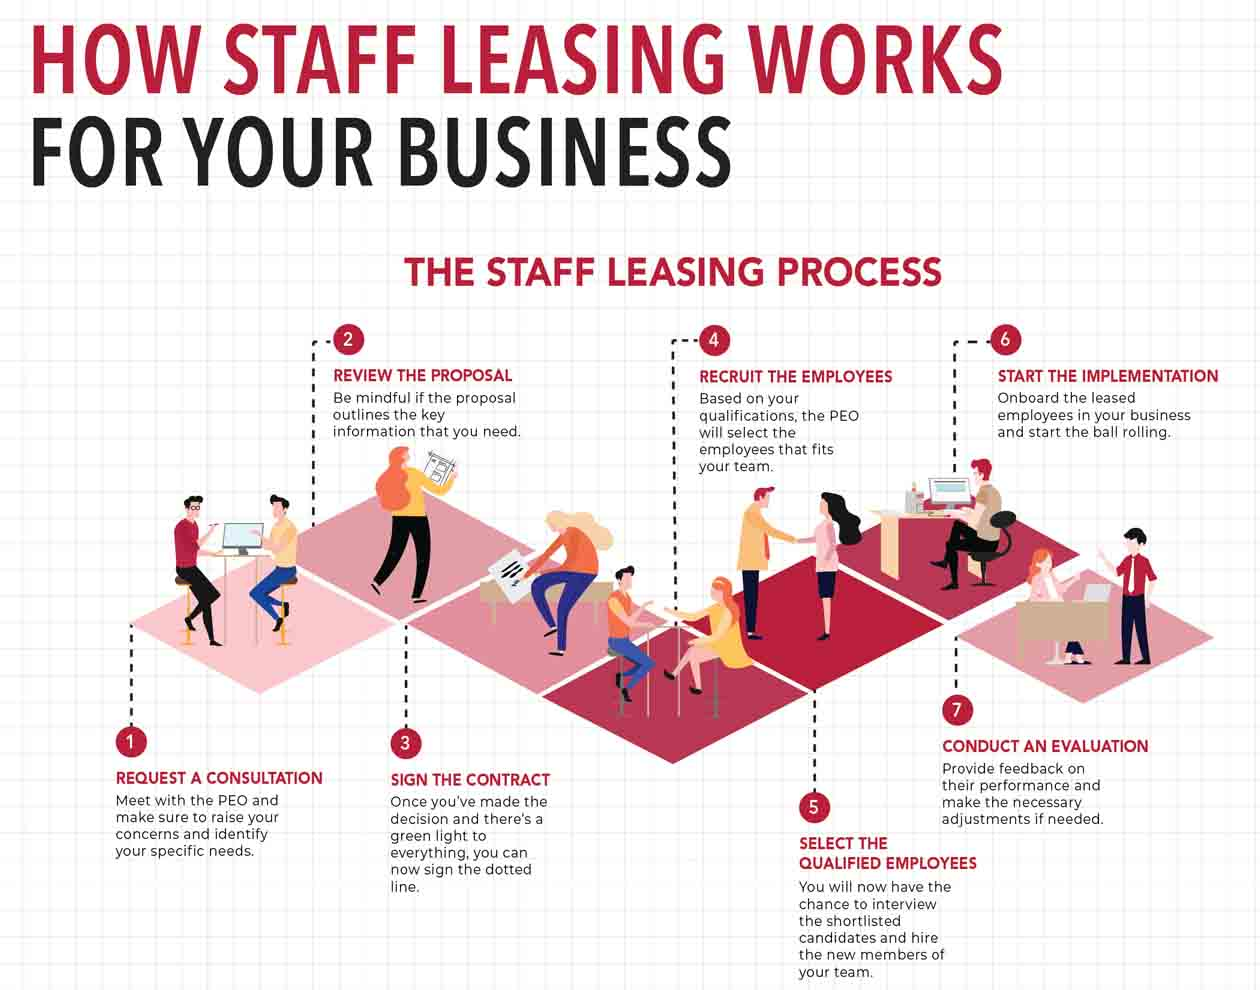 How Staff Leasing Works for Your Business